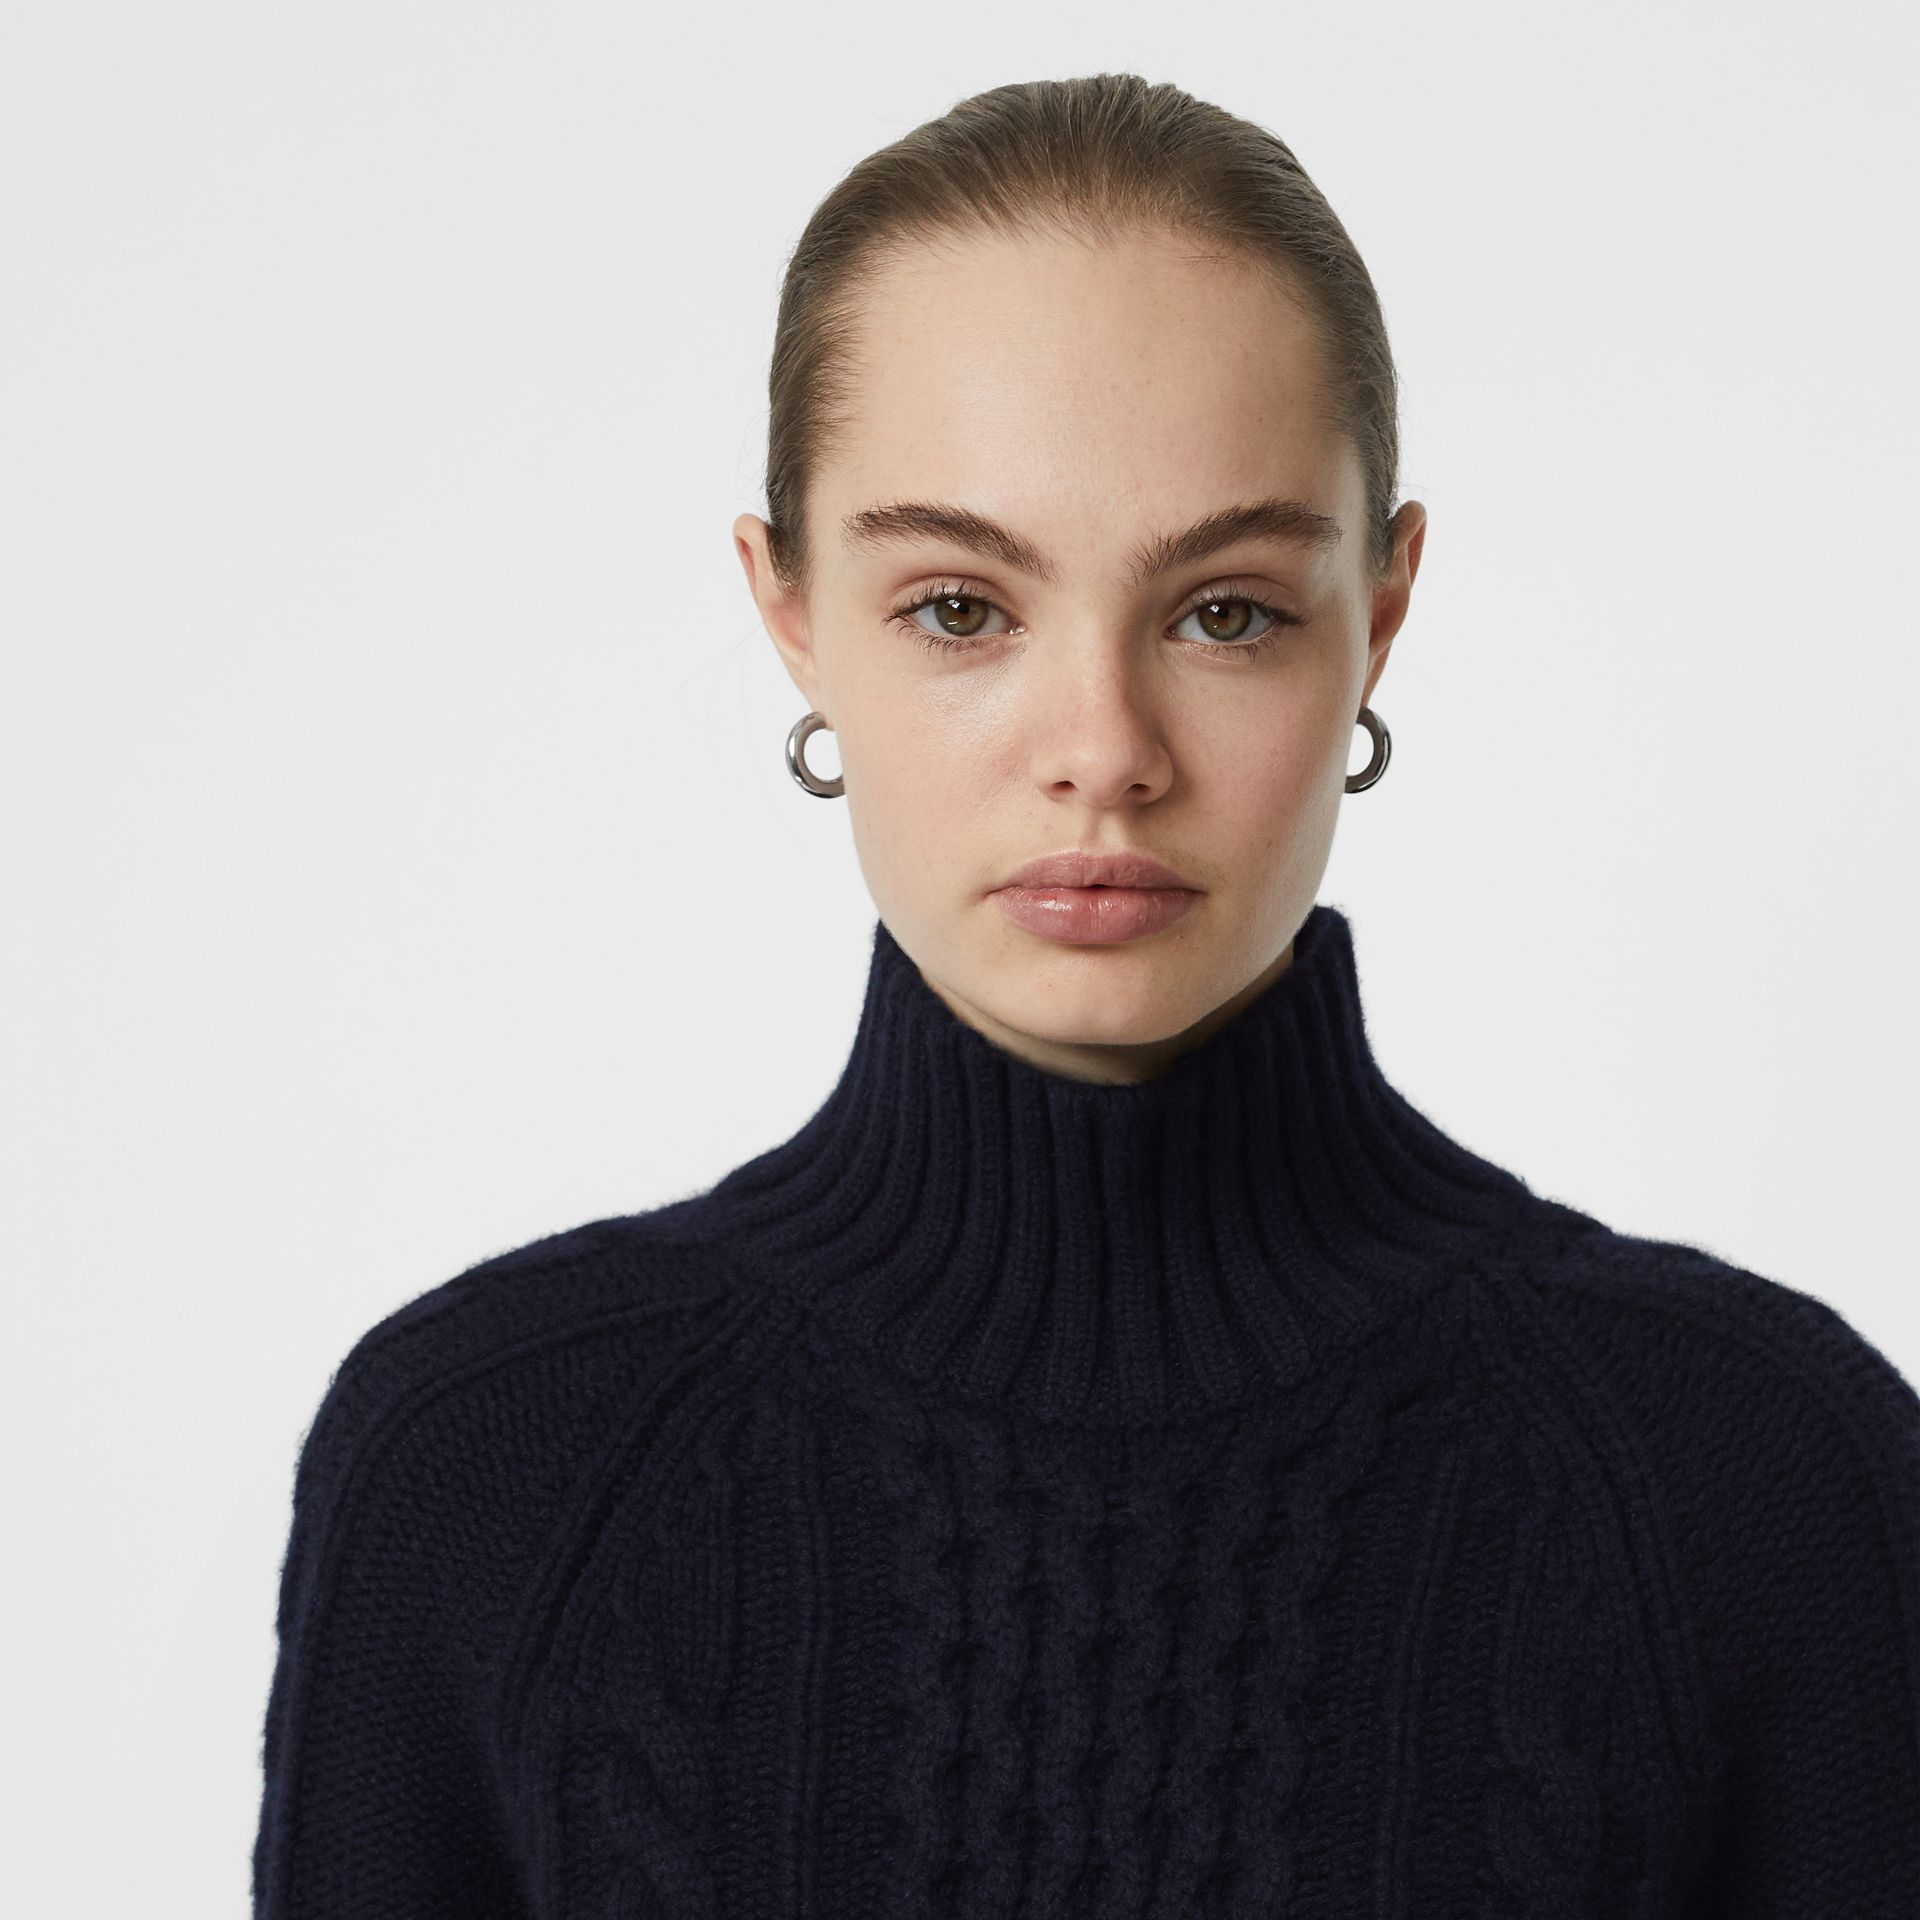 Cable Knit Cashmere Turtleneck Sweater in Navy - Women | Burberry Singapore - gallery image 1